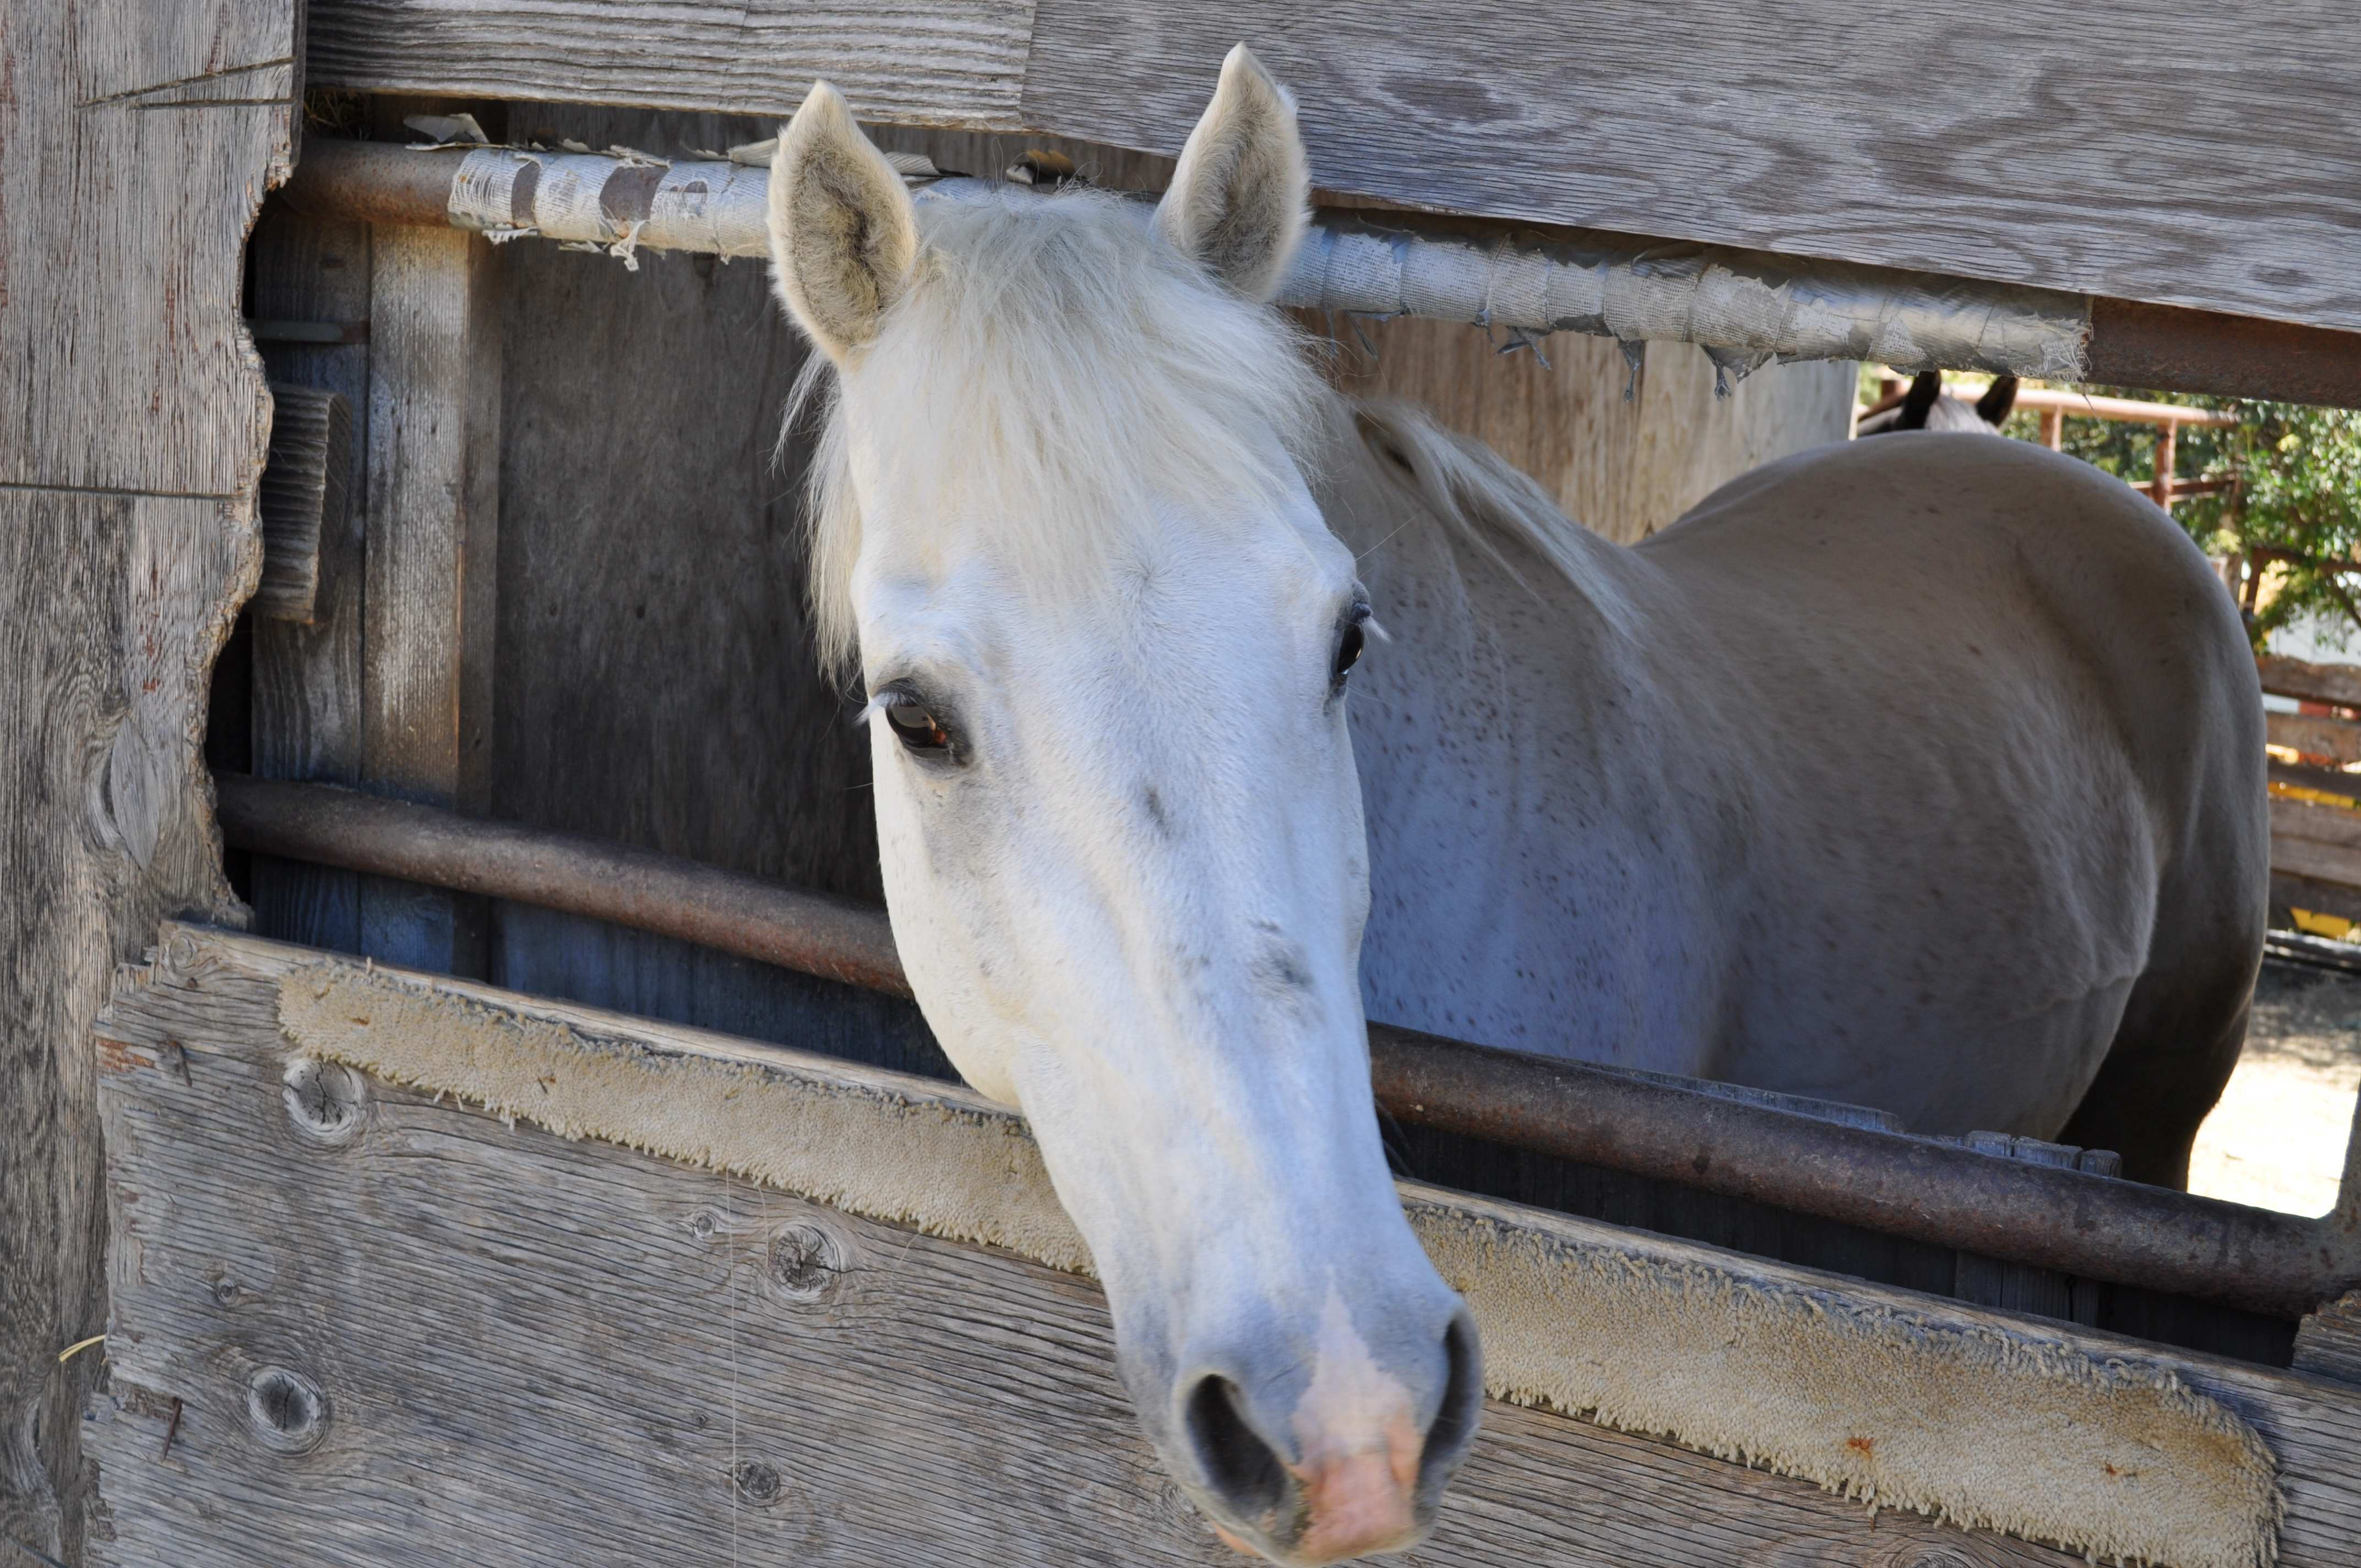 Picture of pepe, our horse